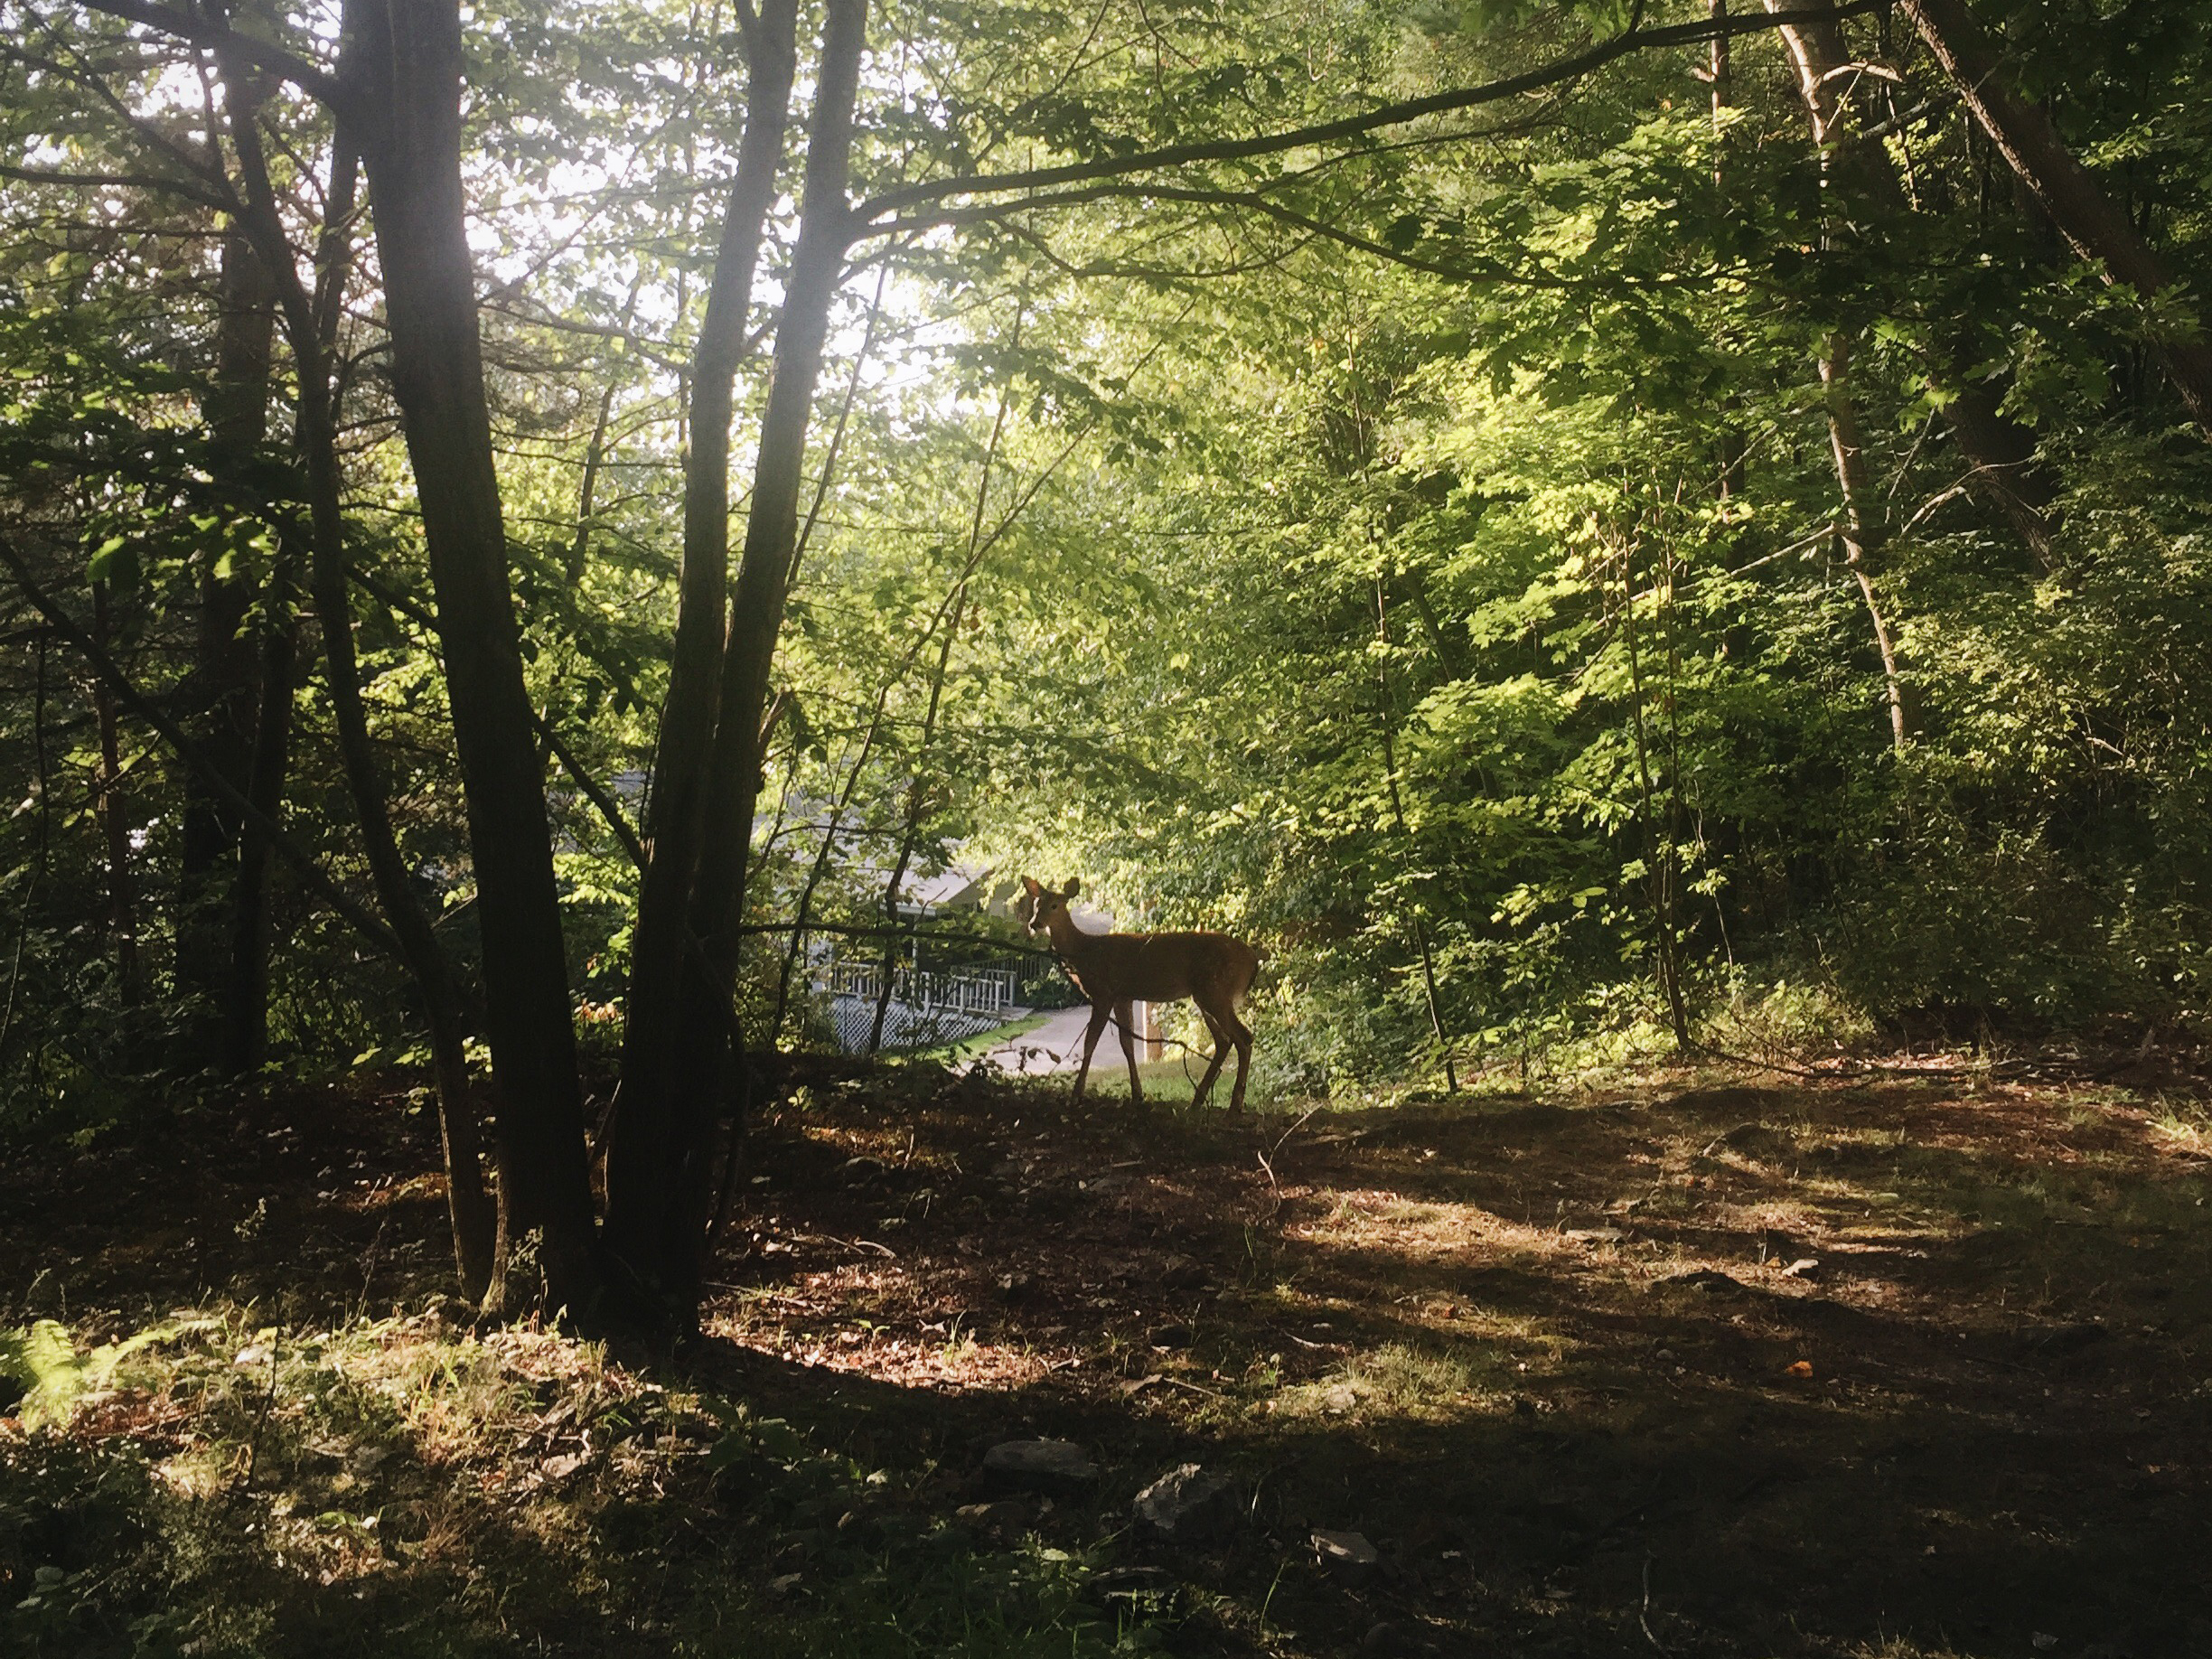 A deer stands in the forest. The sun shines through the trees.